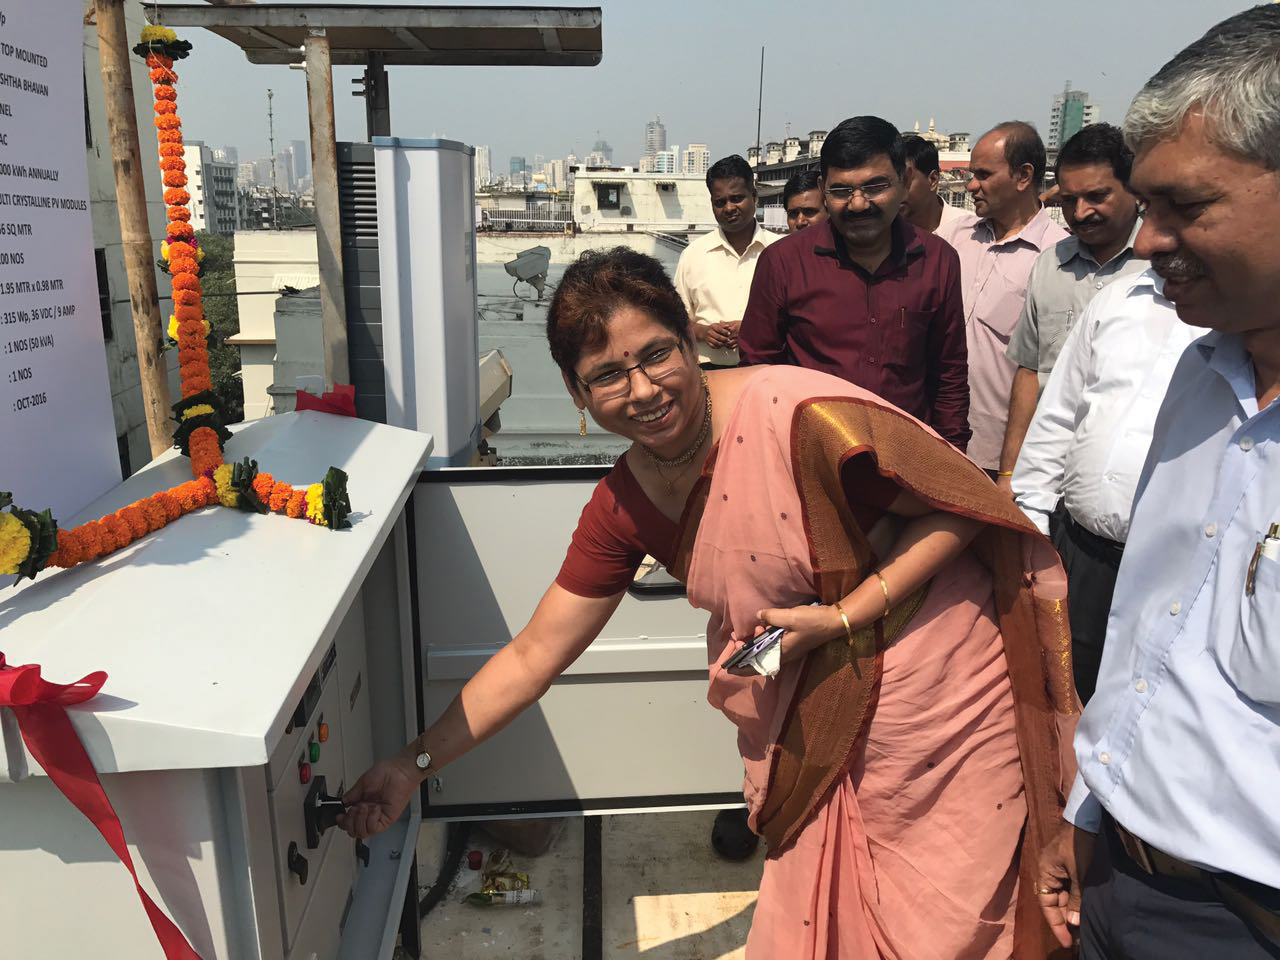 Usha Batra, Special Director General (Western Region), Central Public Works Department, Mumbai, inaugurates a solar rooftop power plant installed at Pratishtha Bhawan, Mumbai, in the presence of senior officers of CPWD